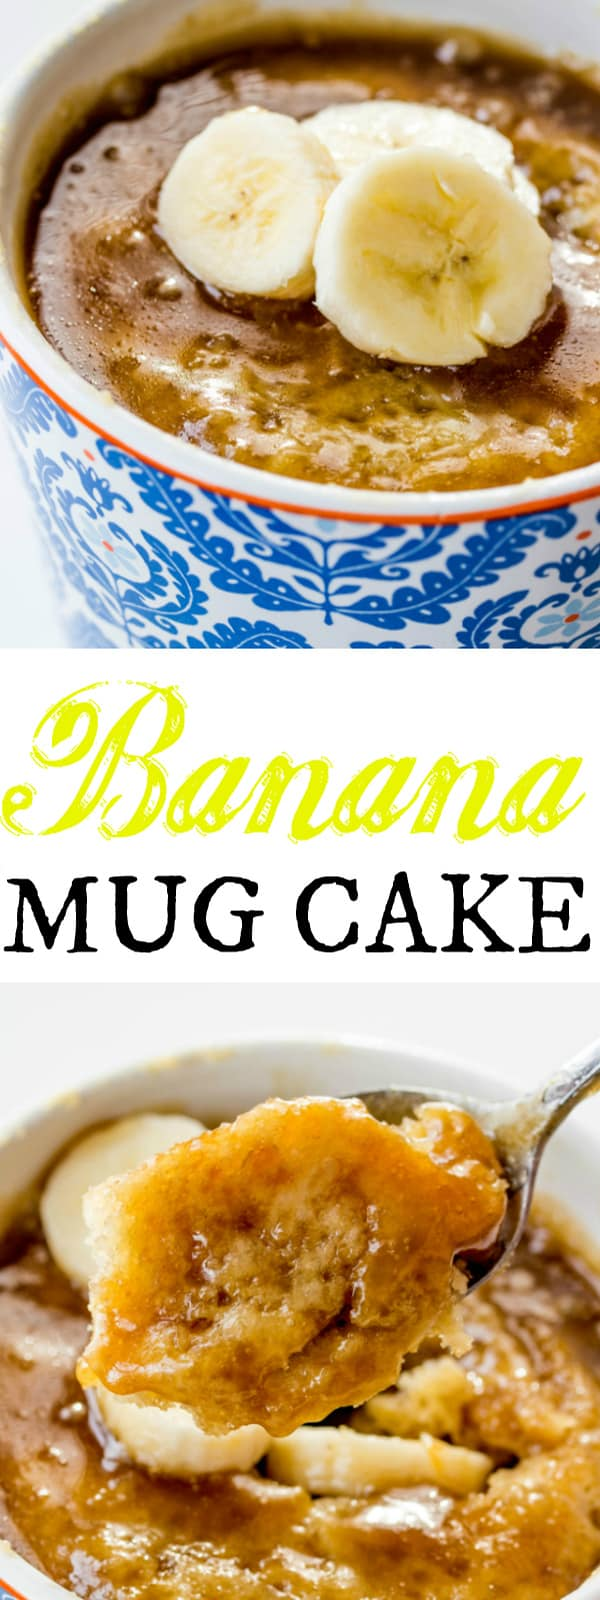 Simple easy and delicious this Banana Mug Cake is the perfect single serving dessert to perk you up when your sweet tooth is calling!